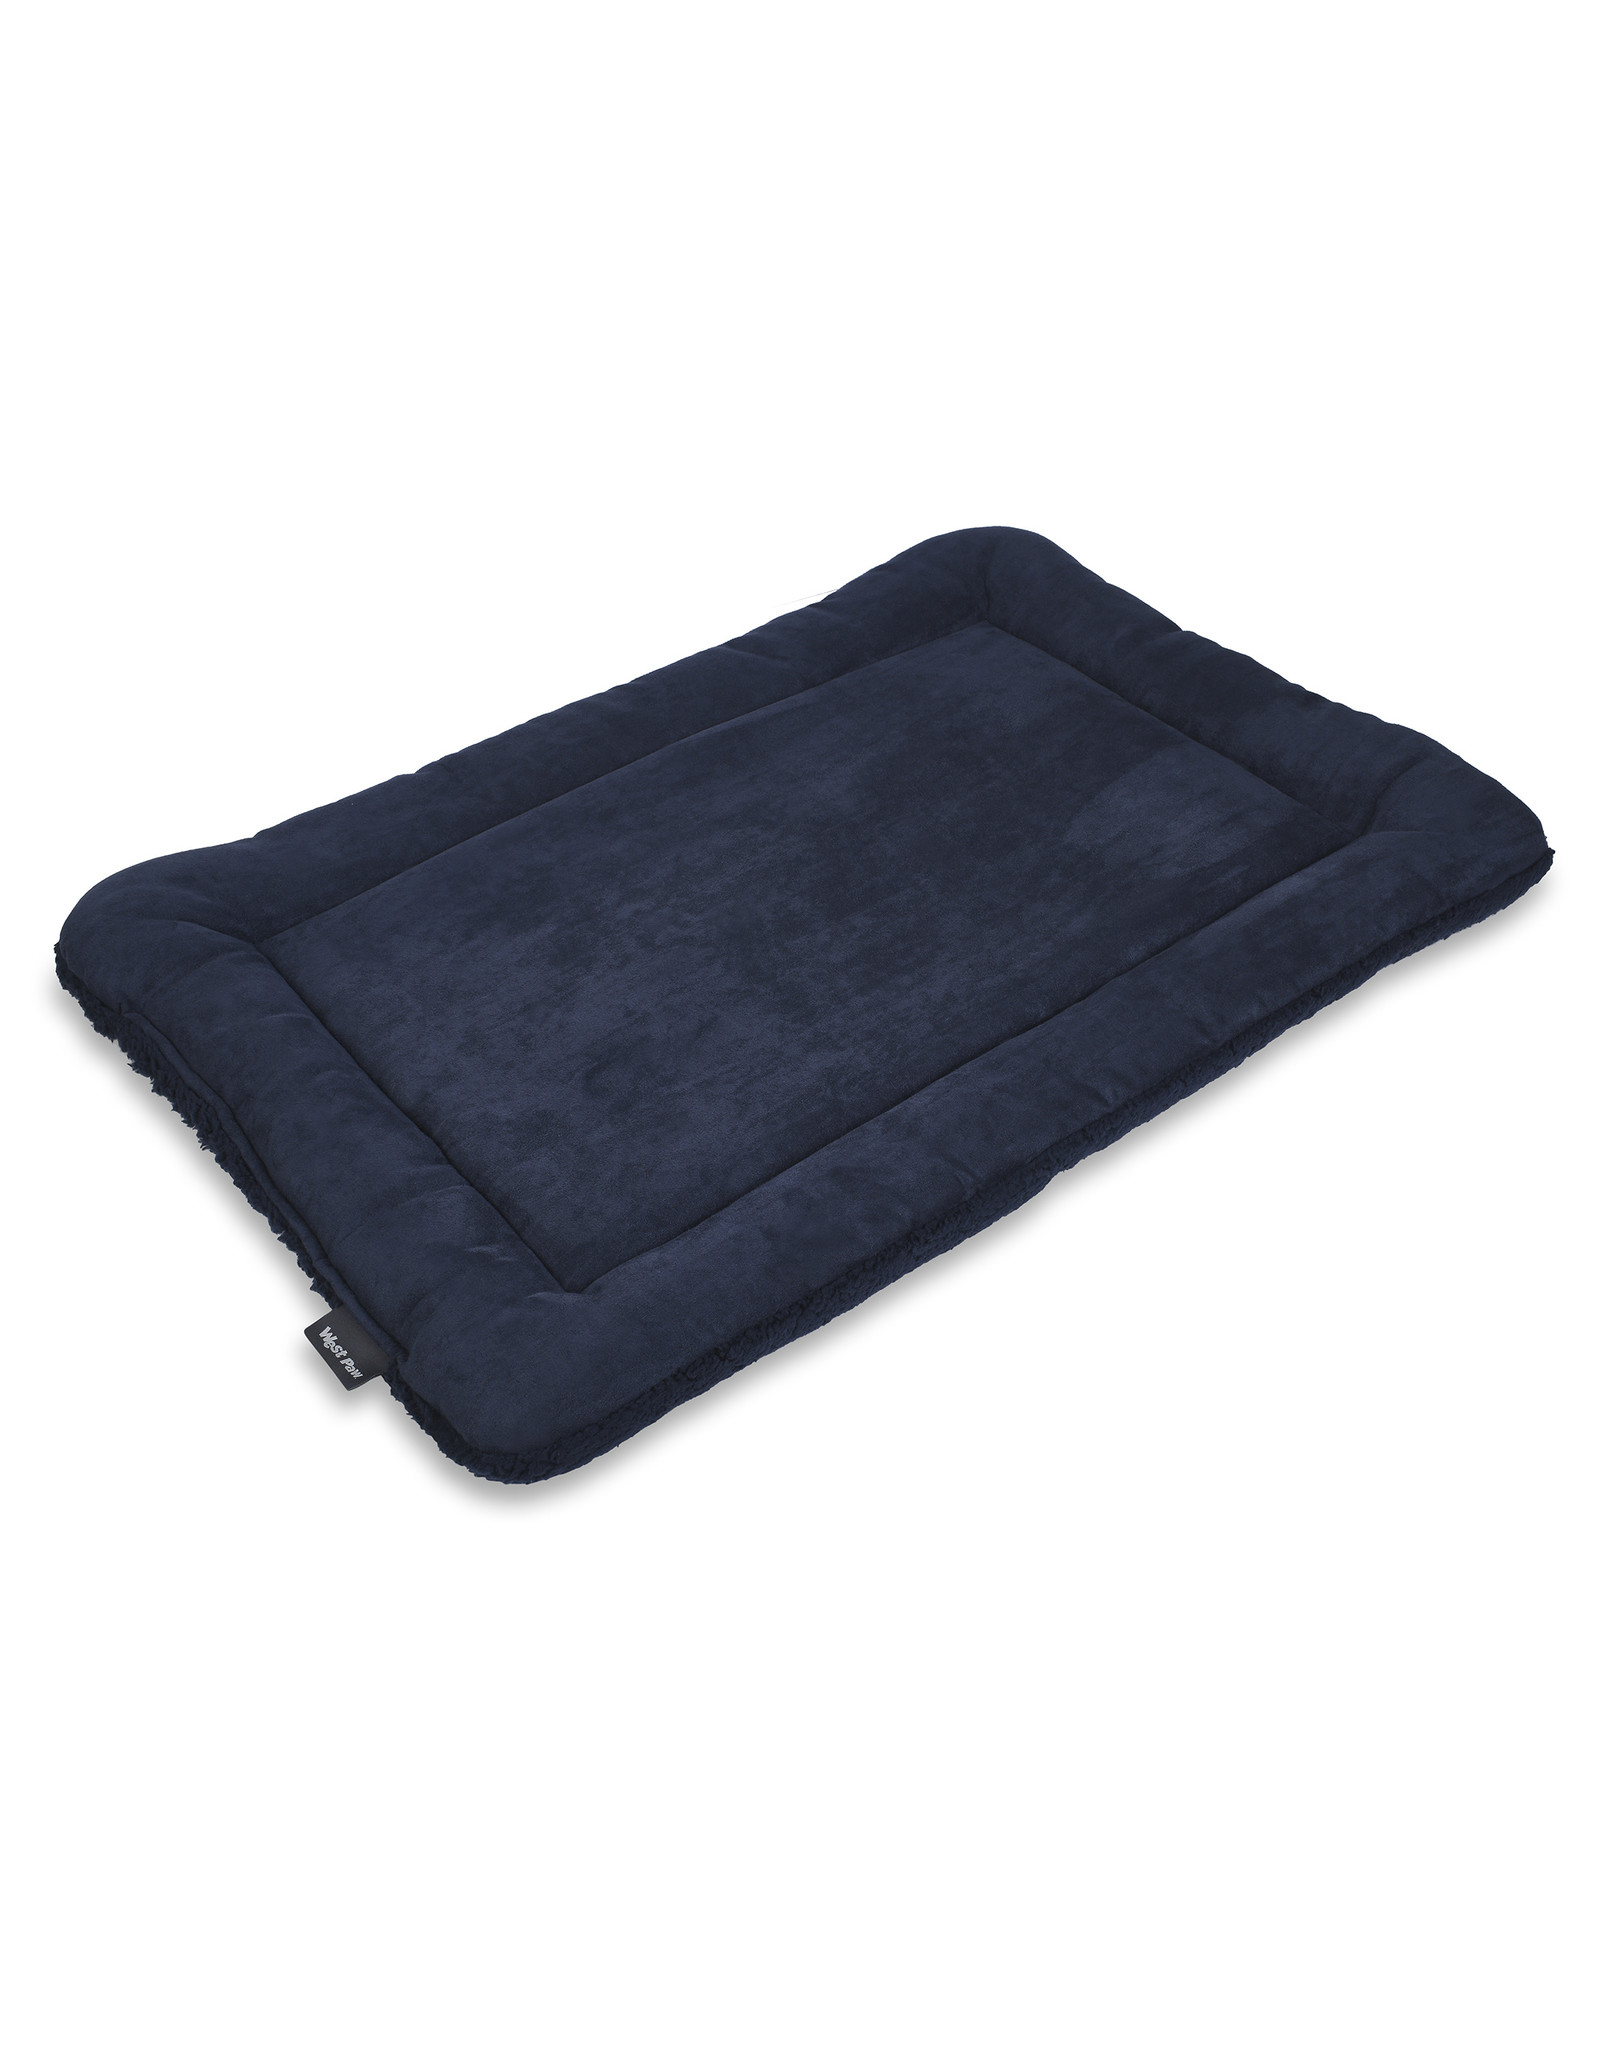 West Paw Designs Westpaw: Big Sky Nap Small Midnight